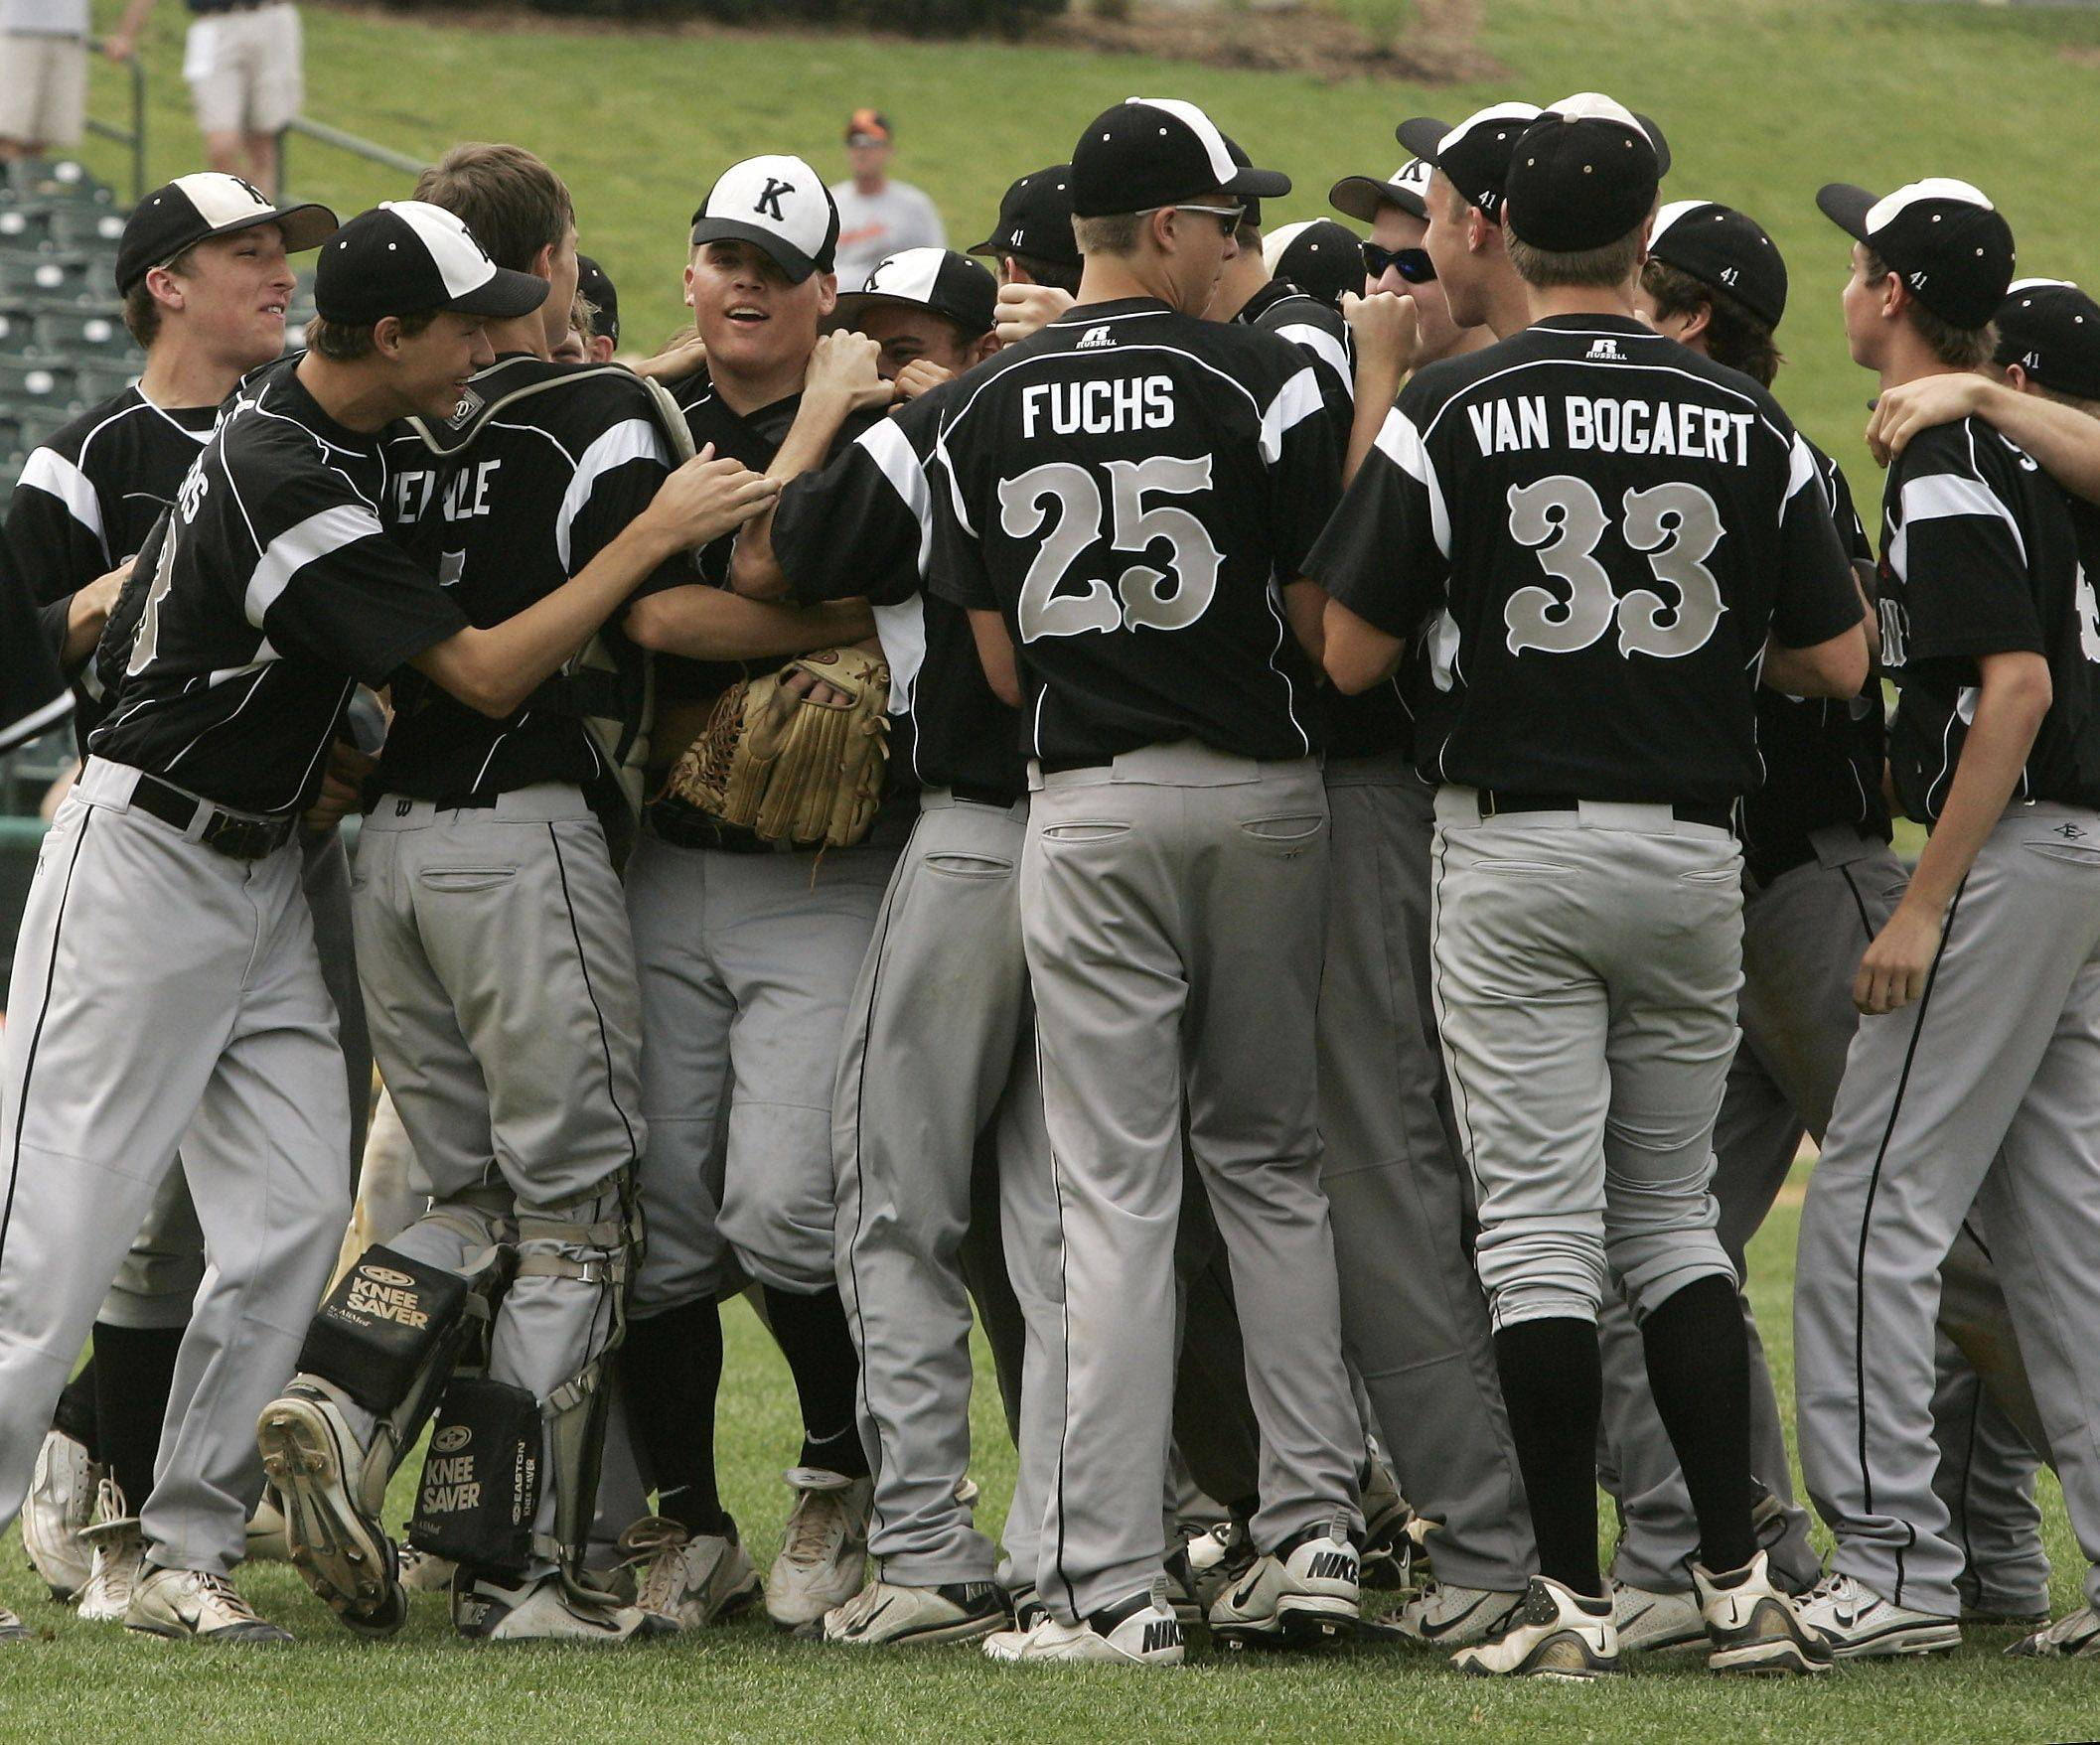 Kaneland players swarm pitcher Bobby Thorson, hat tilted, after their win against Waterloo.